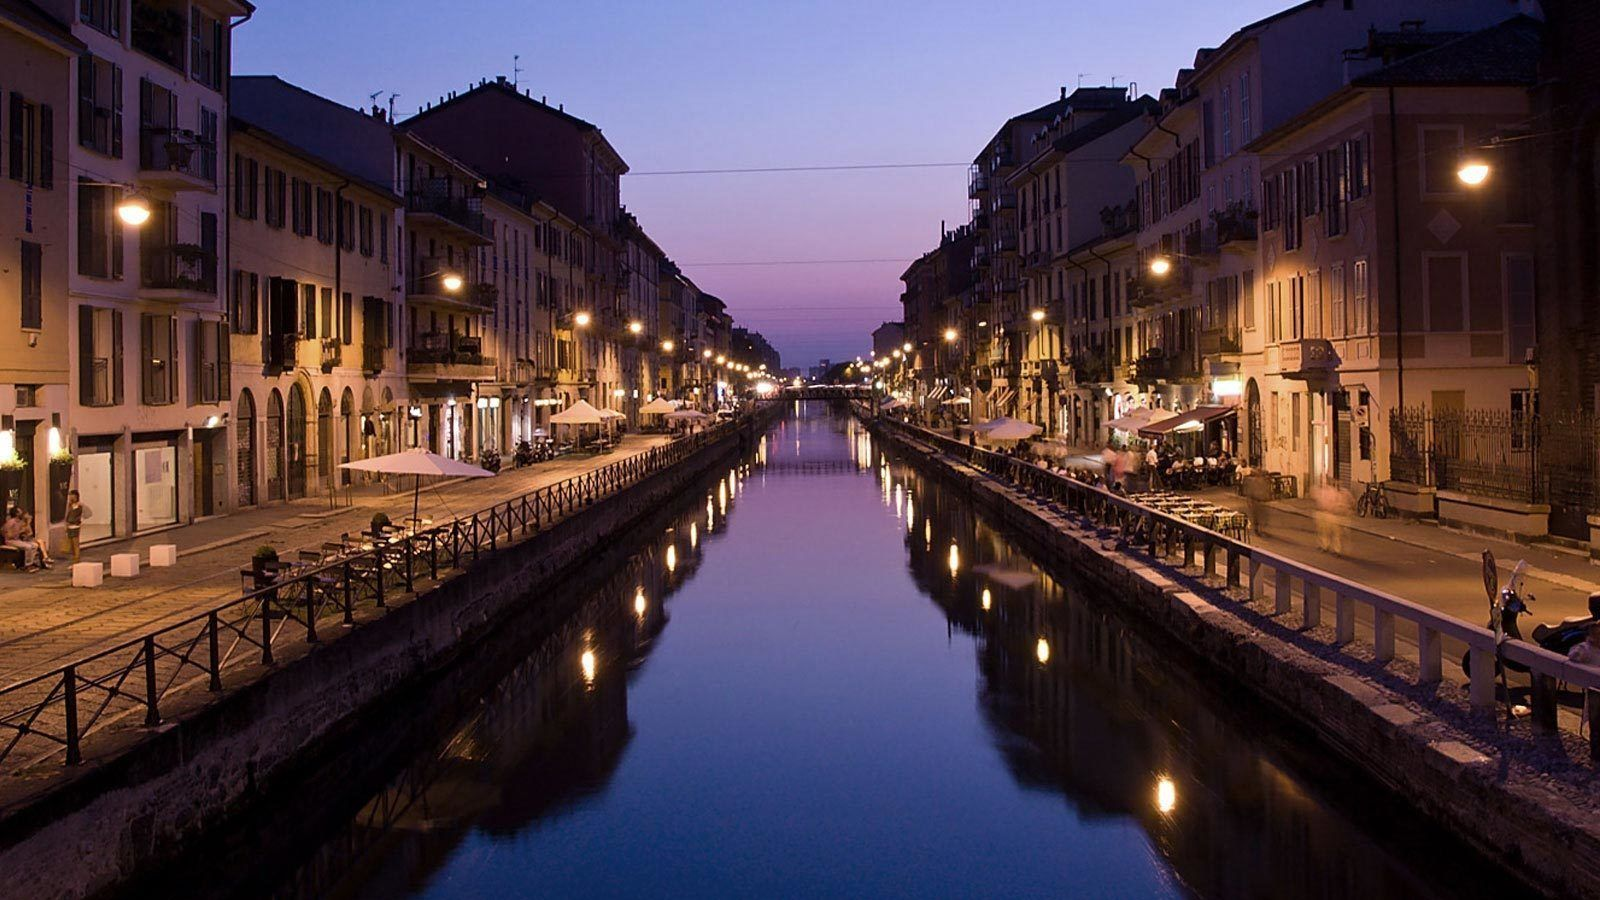 city lights along the water channel in Italy